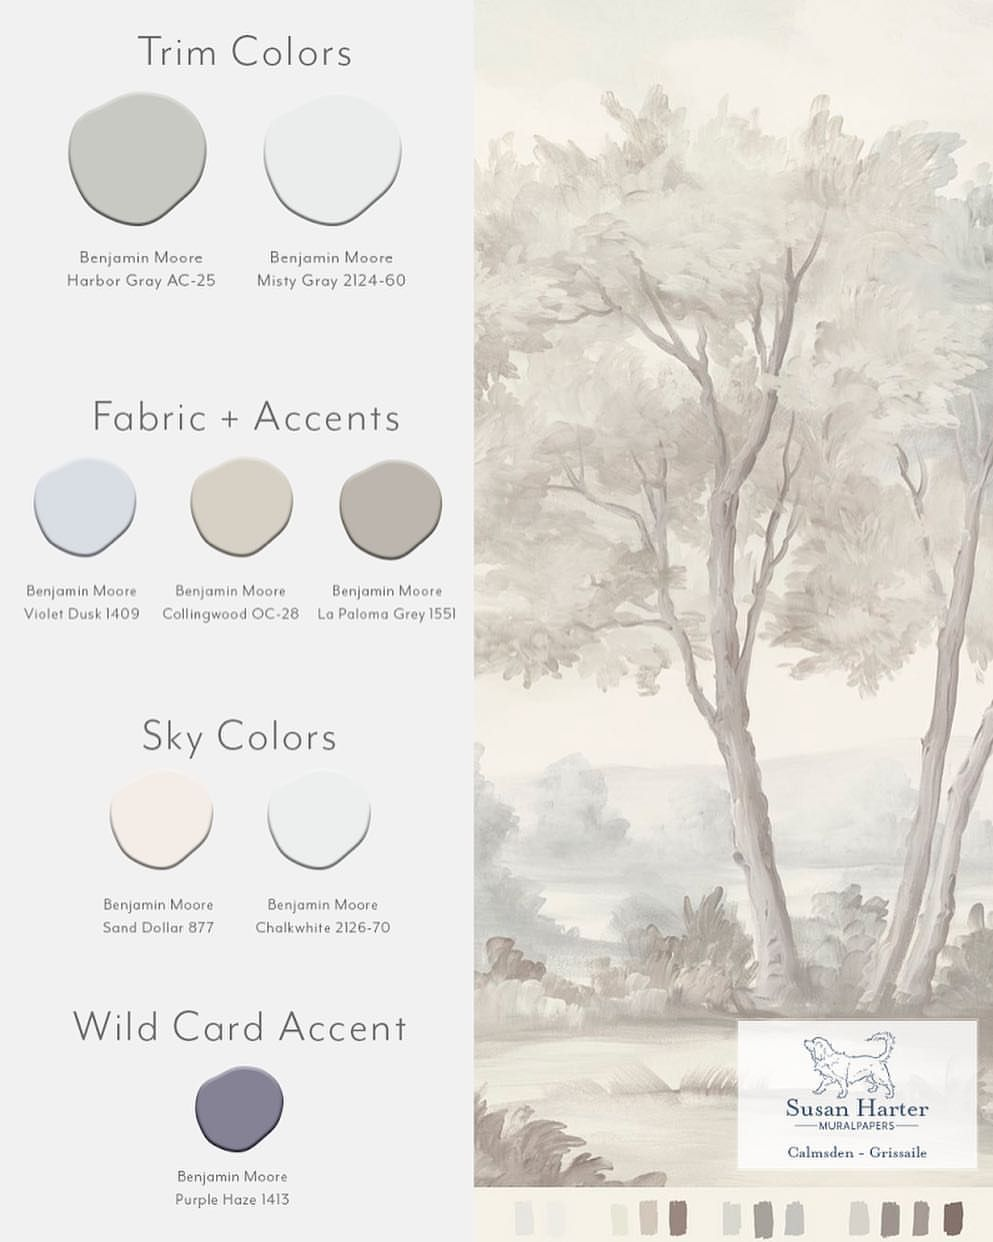 7 Likes 1 Comments Susan Harter Muralpapers Susanhartermuralpapers On Instagram The Muralpaper From Our Last Post Calm Grisaille Mural Wallpaper Mural